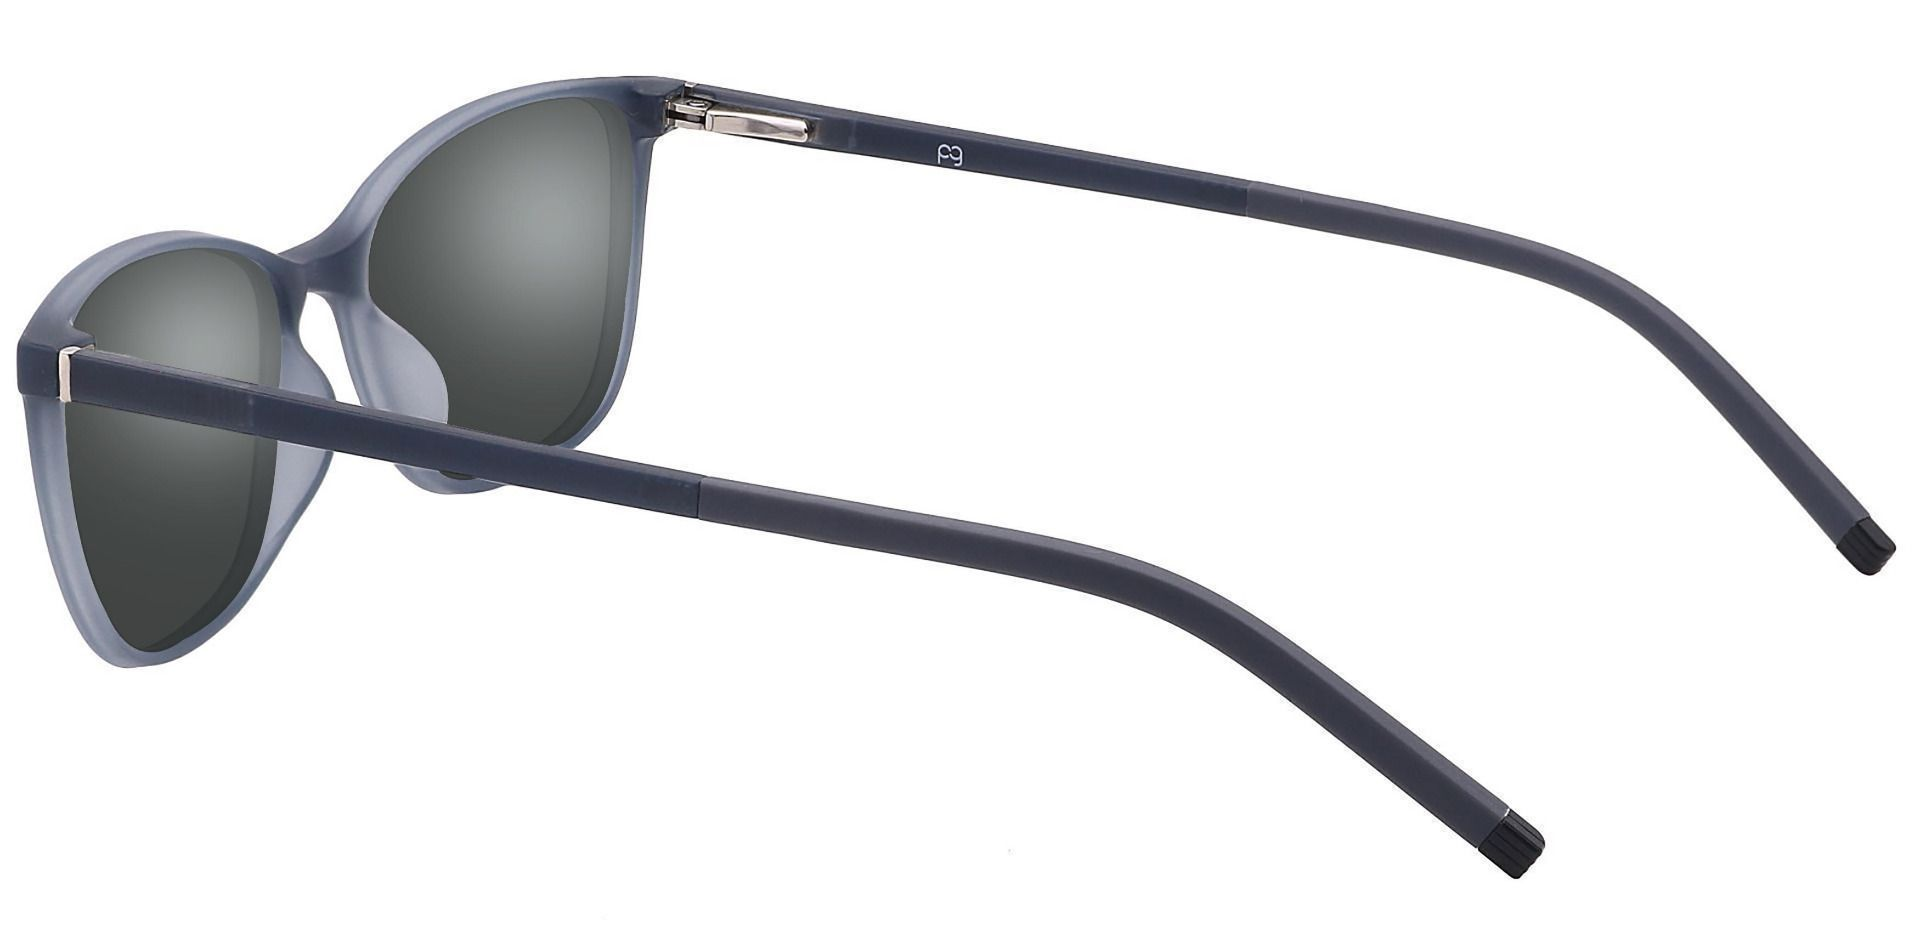 Danica Square Prescription Sunglasses - Gray Frame With Gray Lenses